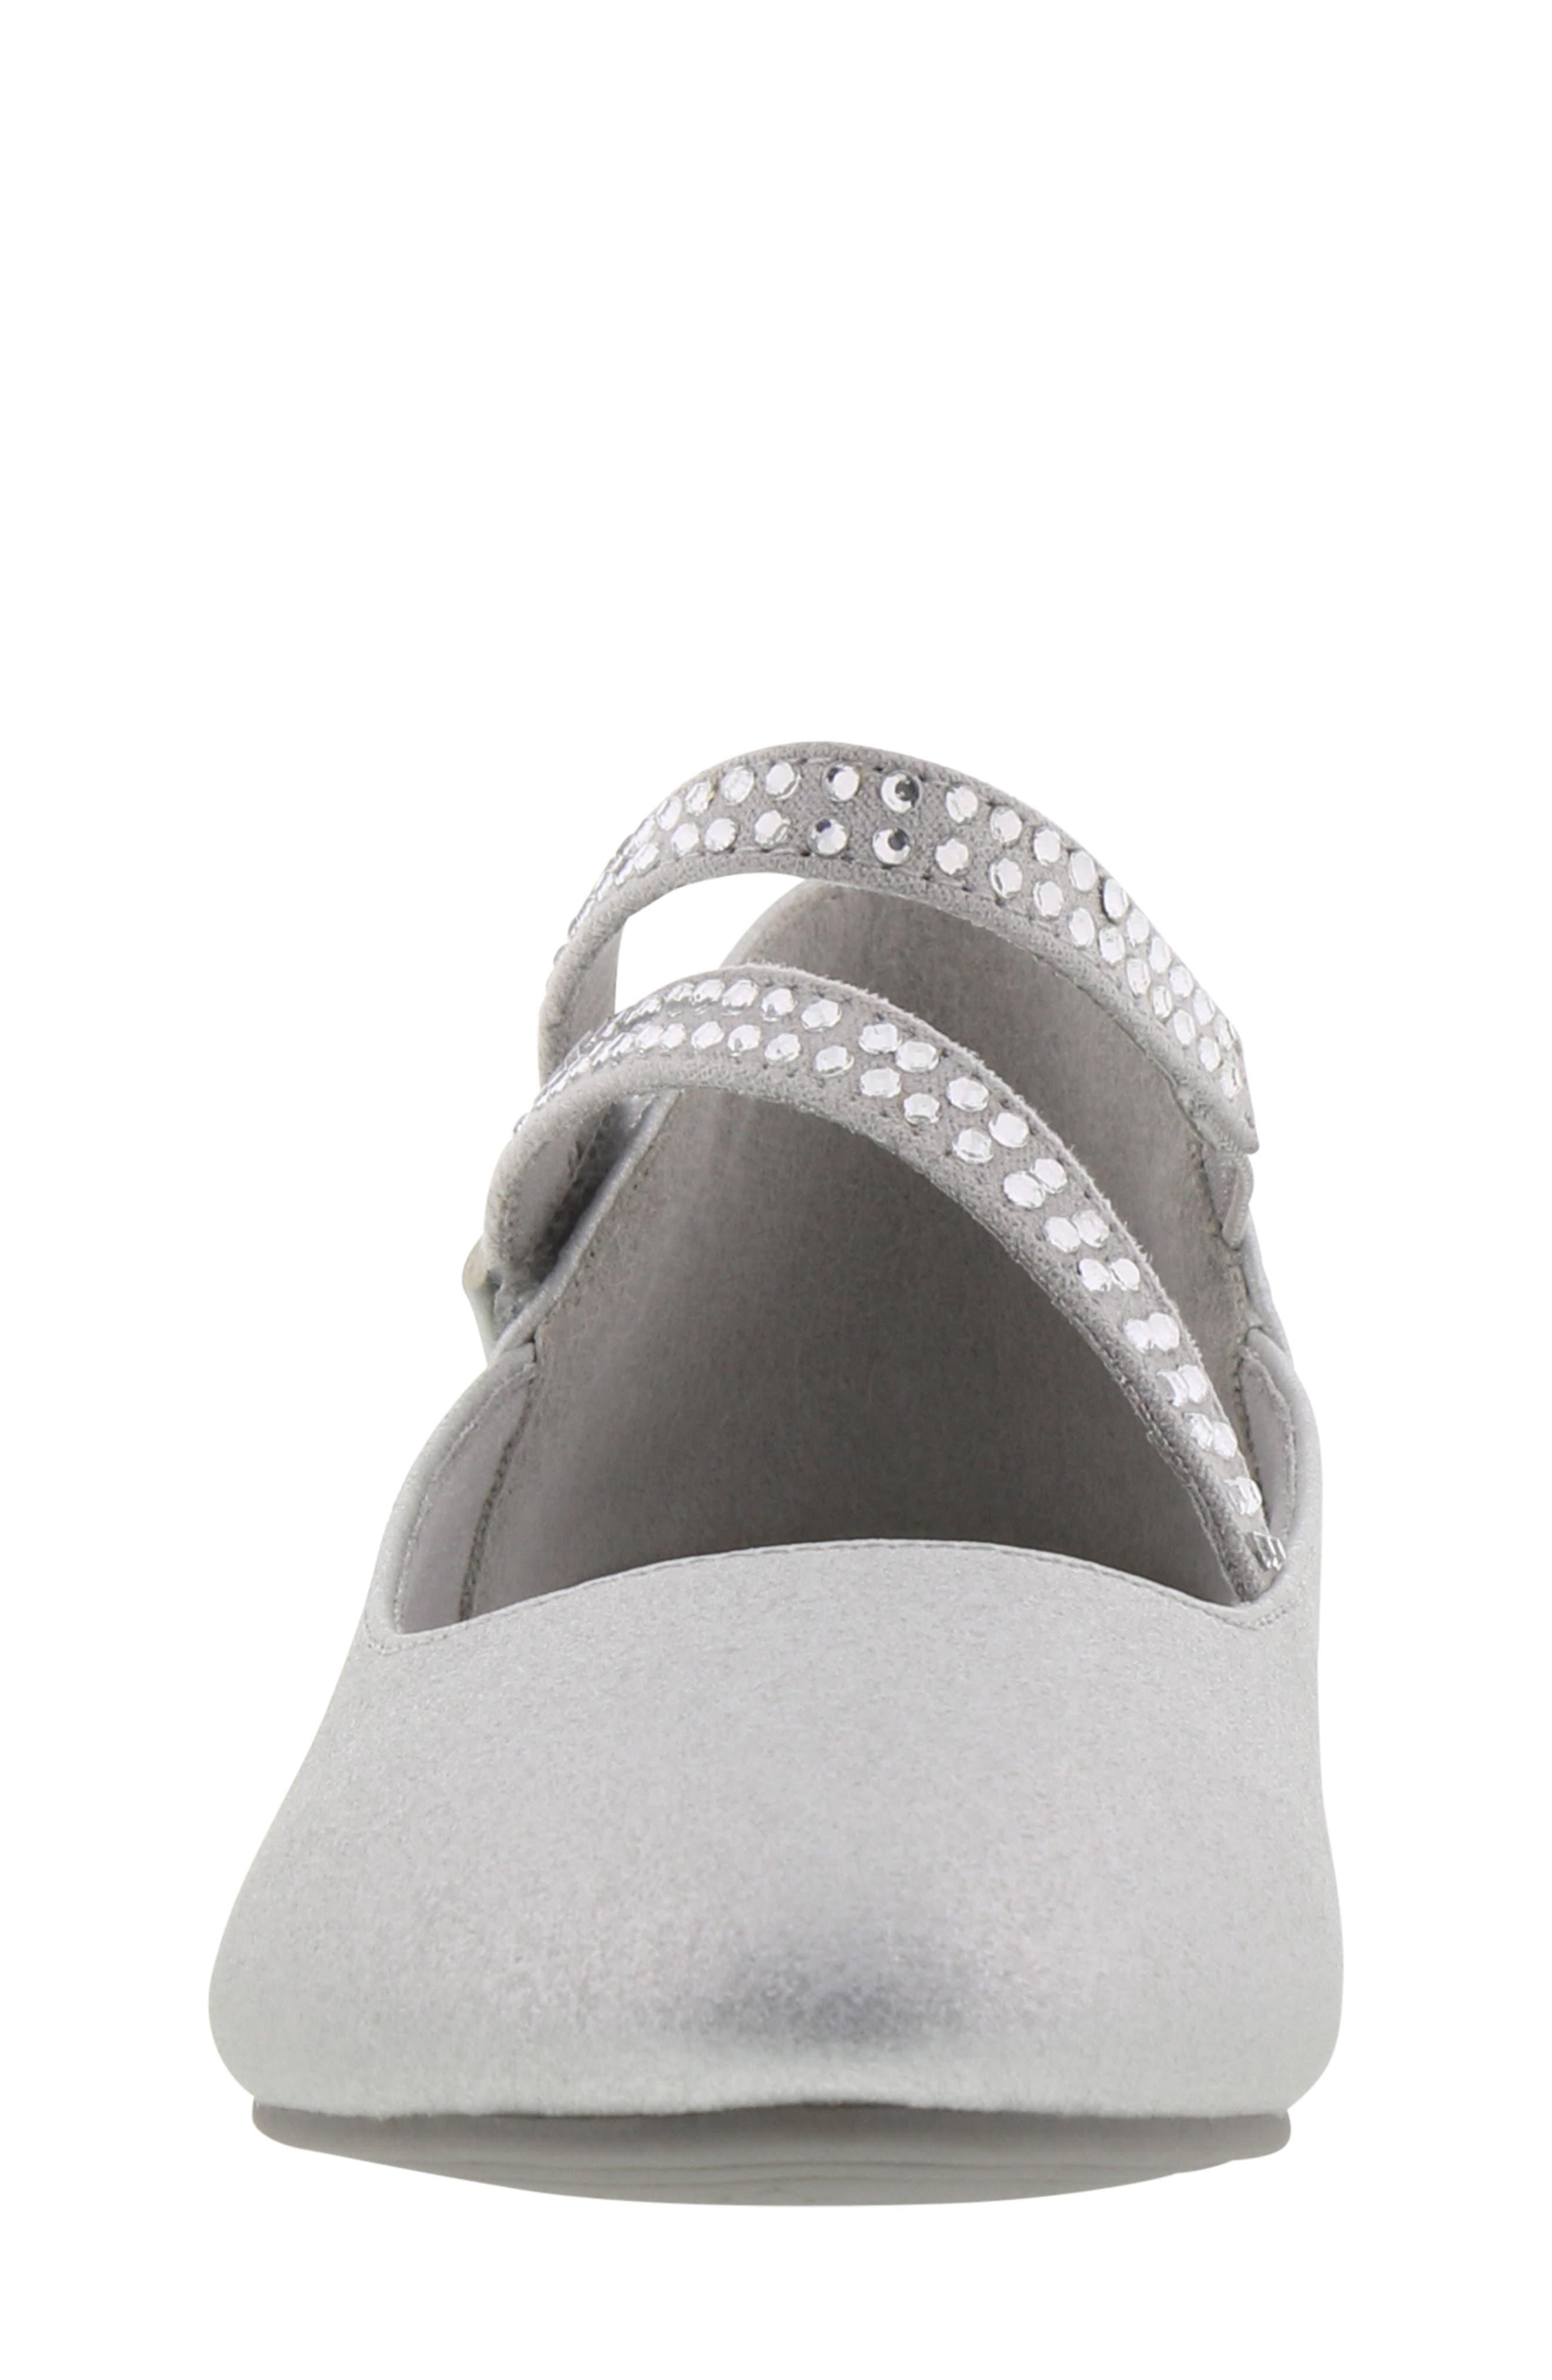 REACTION KENNETH COLE, Tap Lily-T Embellished Flat, Alternate thumbnail 4, color, SILVER